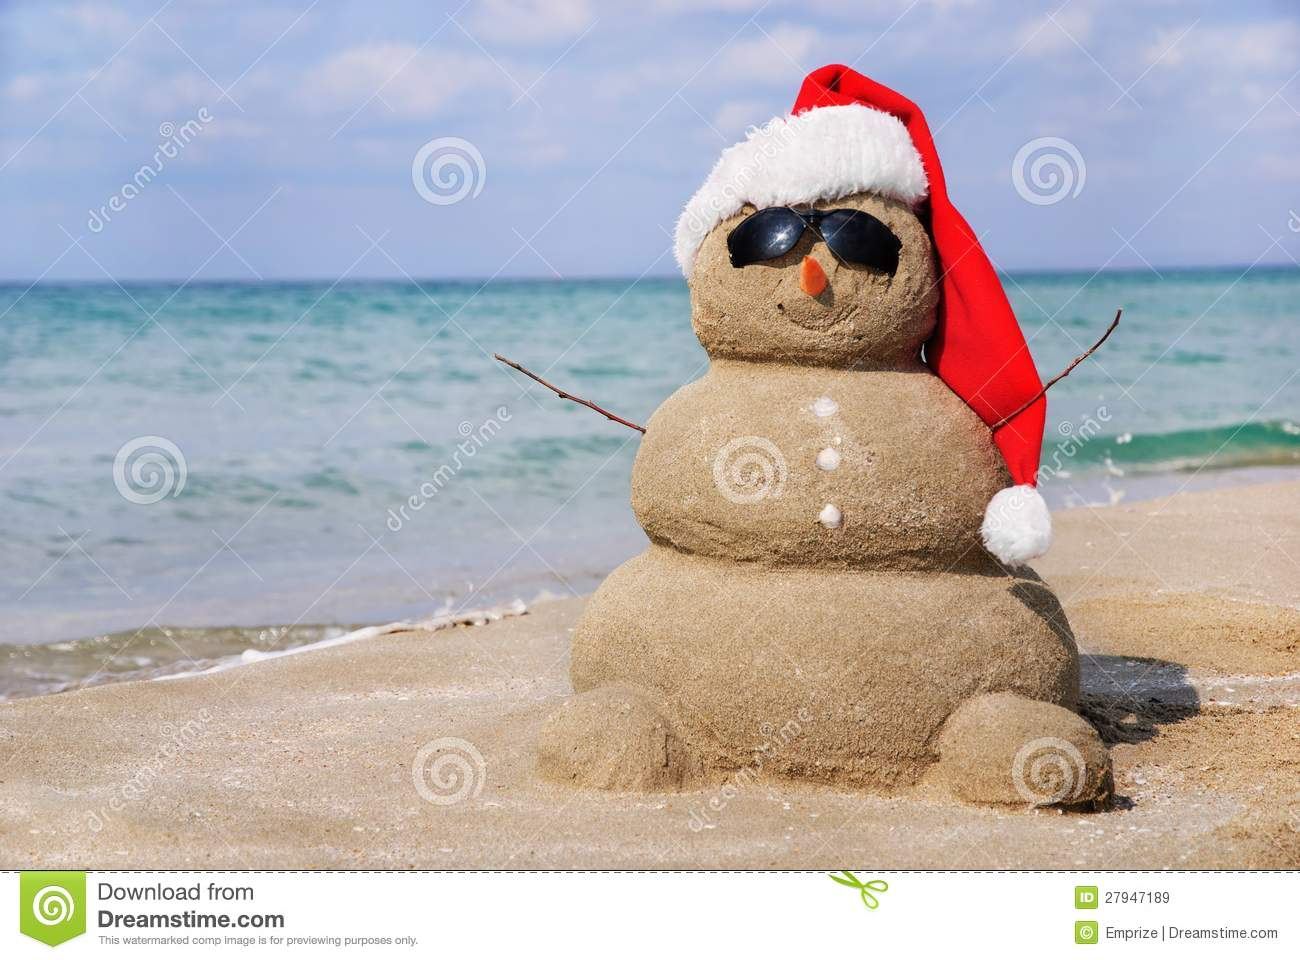 Snowman Made Out Of Sand Stock Image Image Of Sunglasses